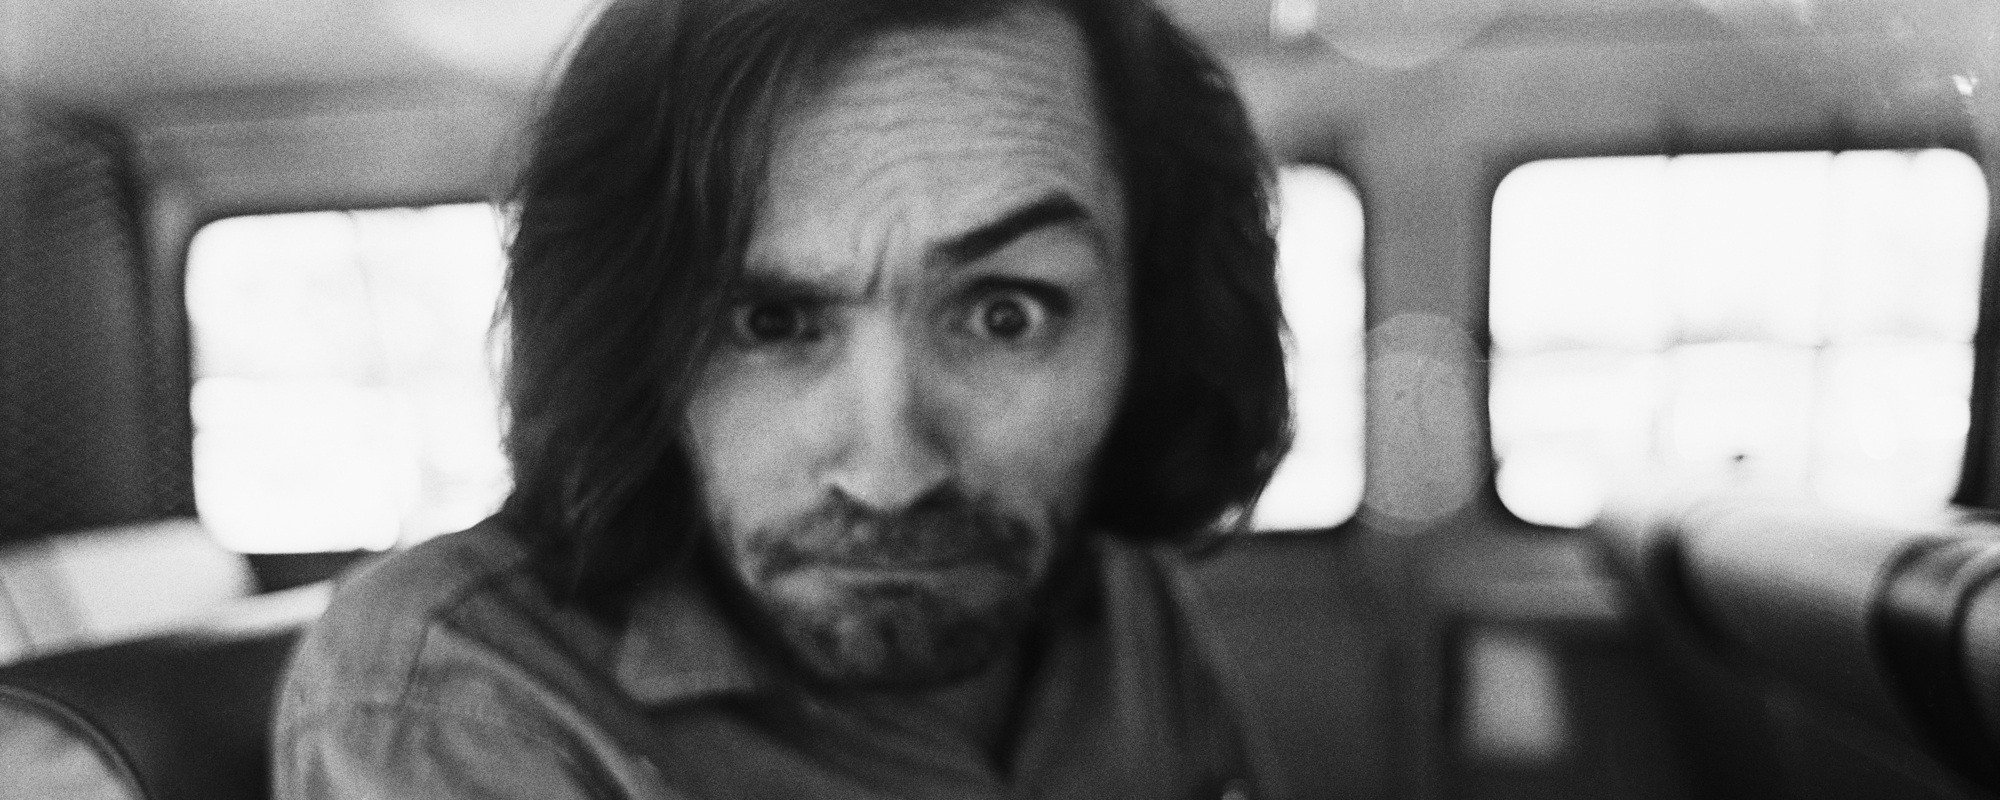 Charles Manson: The Man Behind...